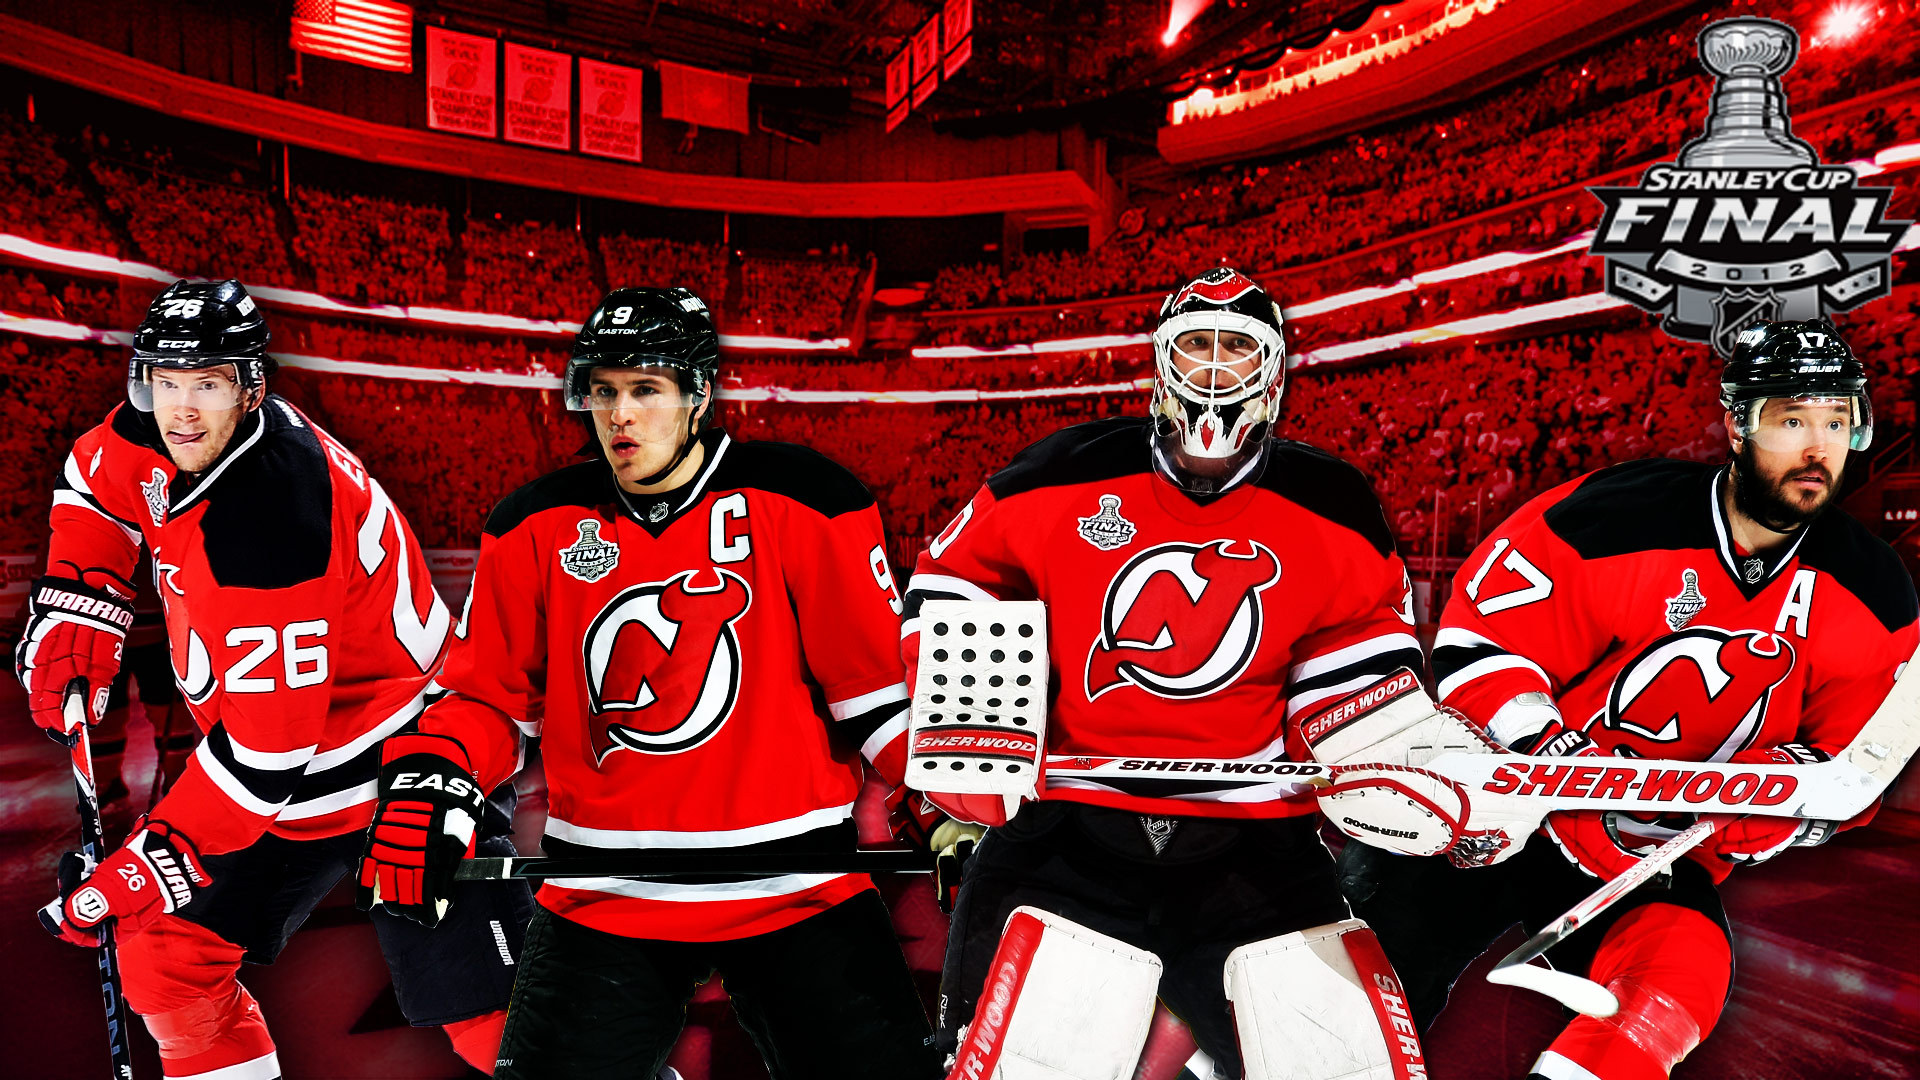 1920x1080 - New Jersey Devils Wallpapers 8